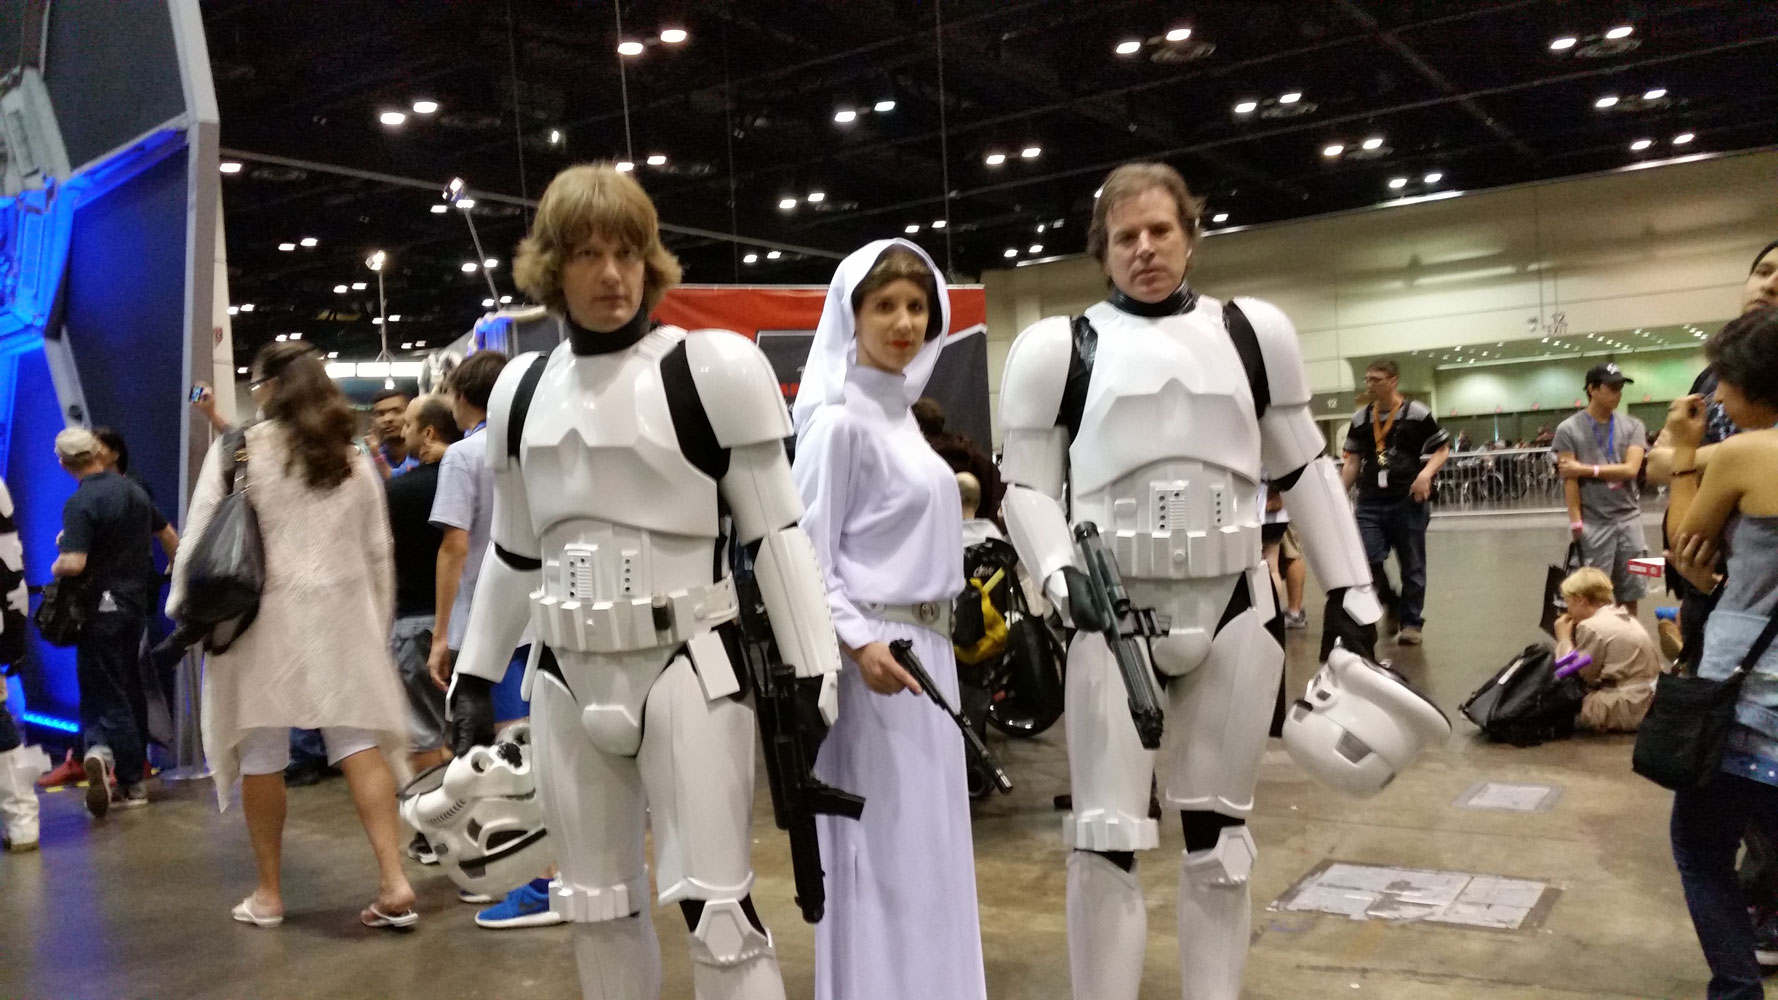 Awesome Luke, Leia and Han cosplay.  They're not short for Stormtroopers.  Haha!